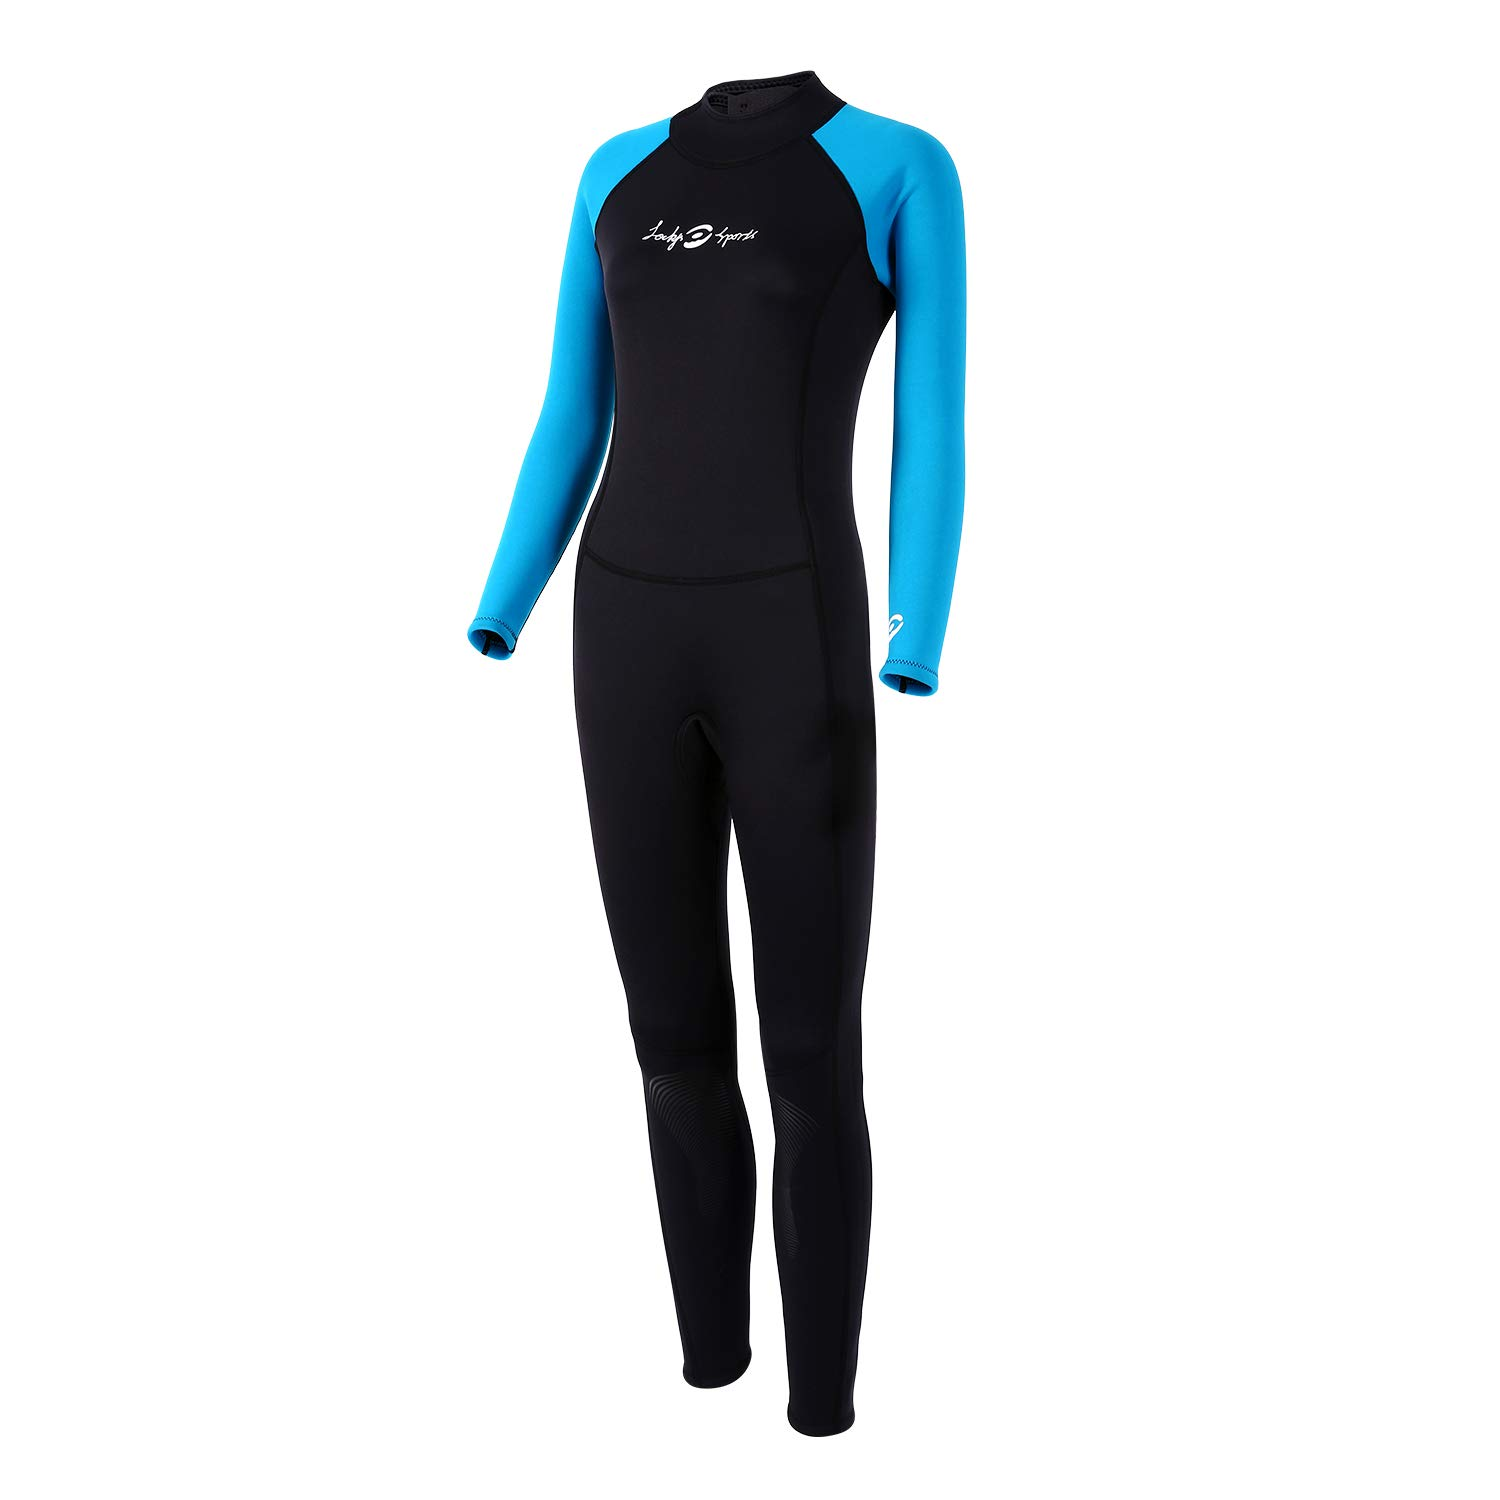 lockys sports Womens Full Wetsuits,Full Body Diving Suit Premium Neoprene Long Sleeve Long Leg BackZip with Adjustable Collar for Diving Surfing Snorkeling for Women (X-Large) by lockys sports